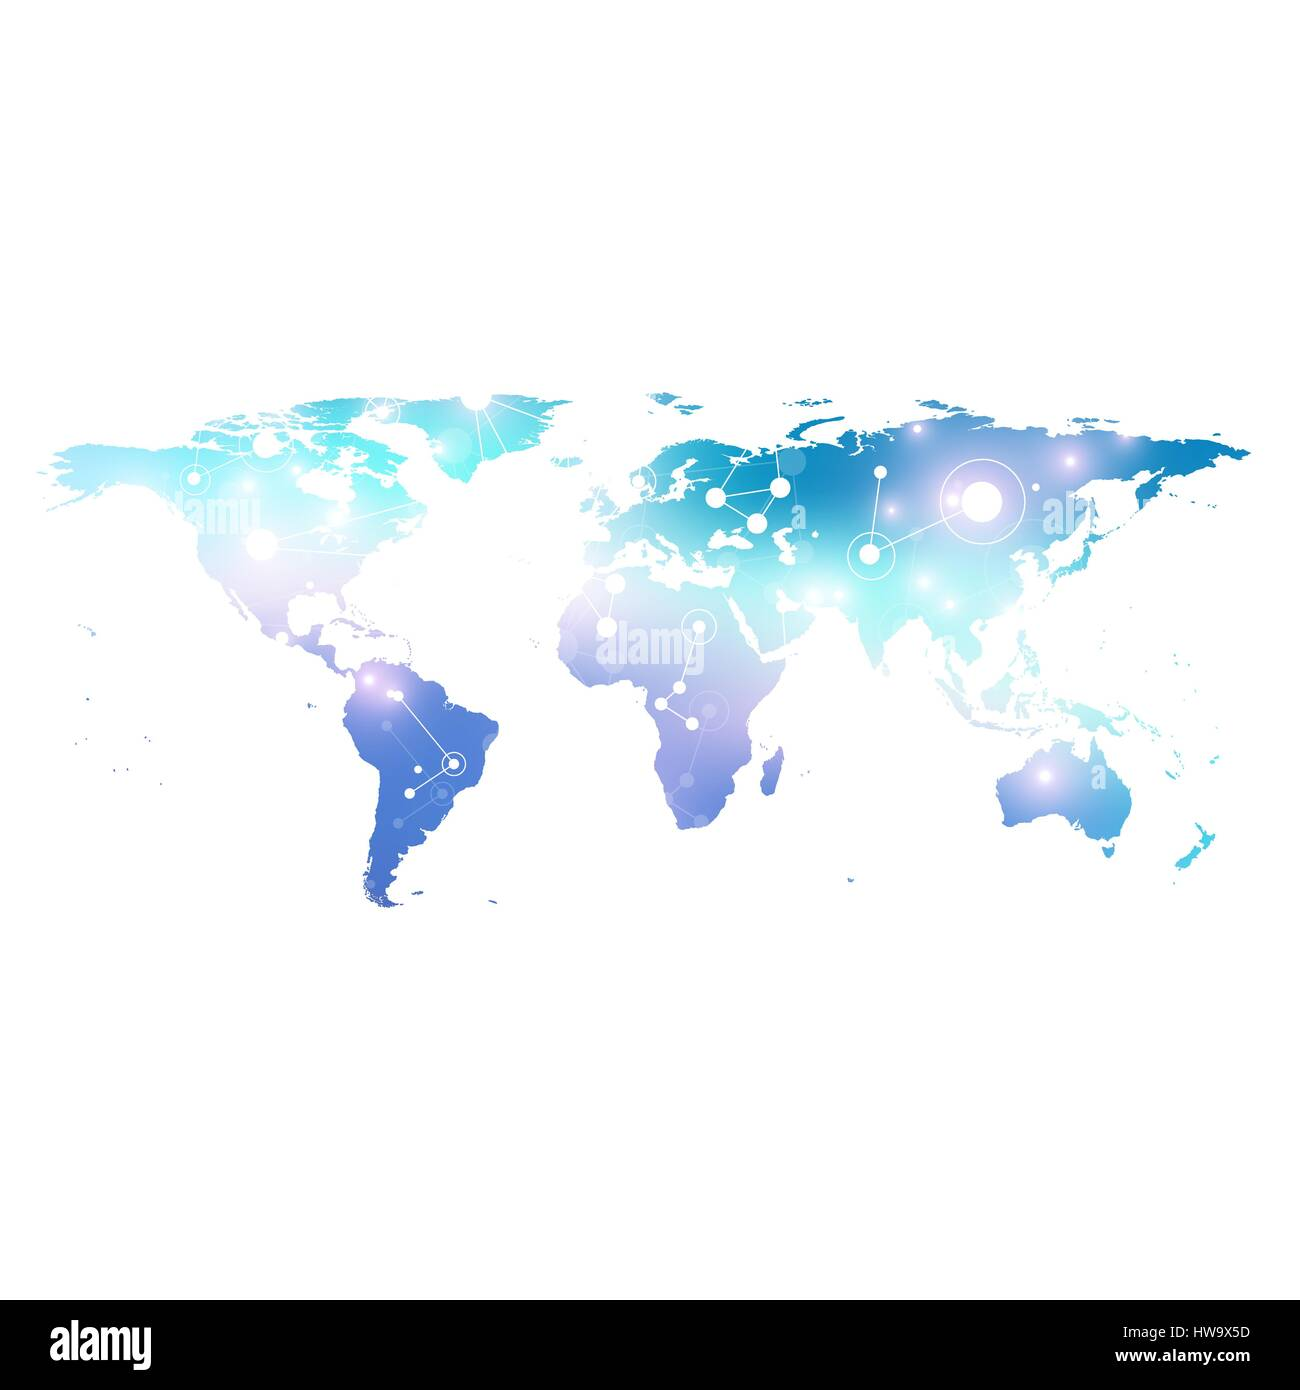 World map with global technology networking concept digital data digital data visualization scientific cybernetic particle compounds big data background communication vector illustration world map gumiabroncs Image collections